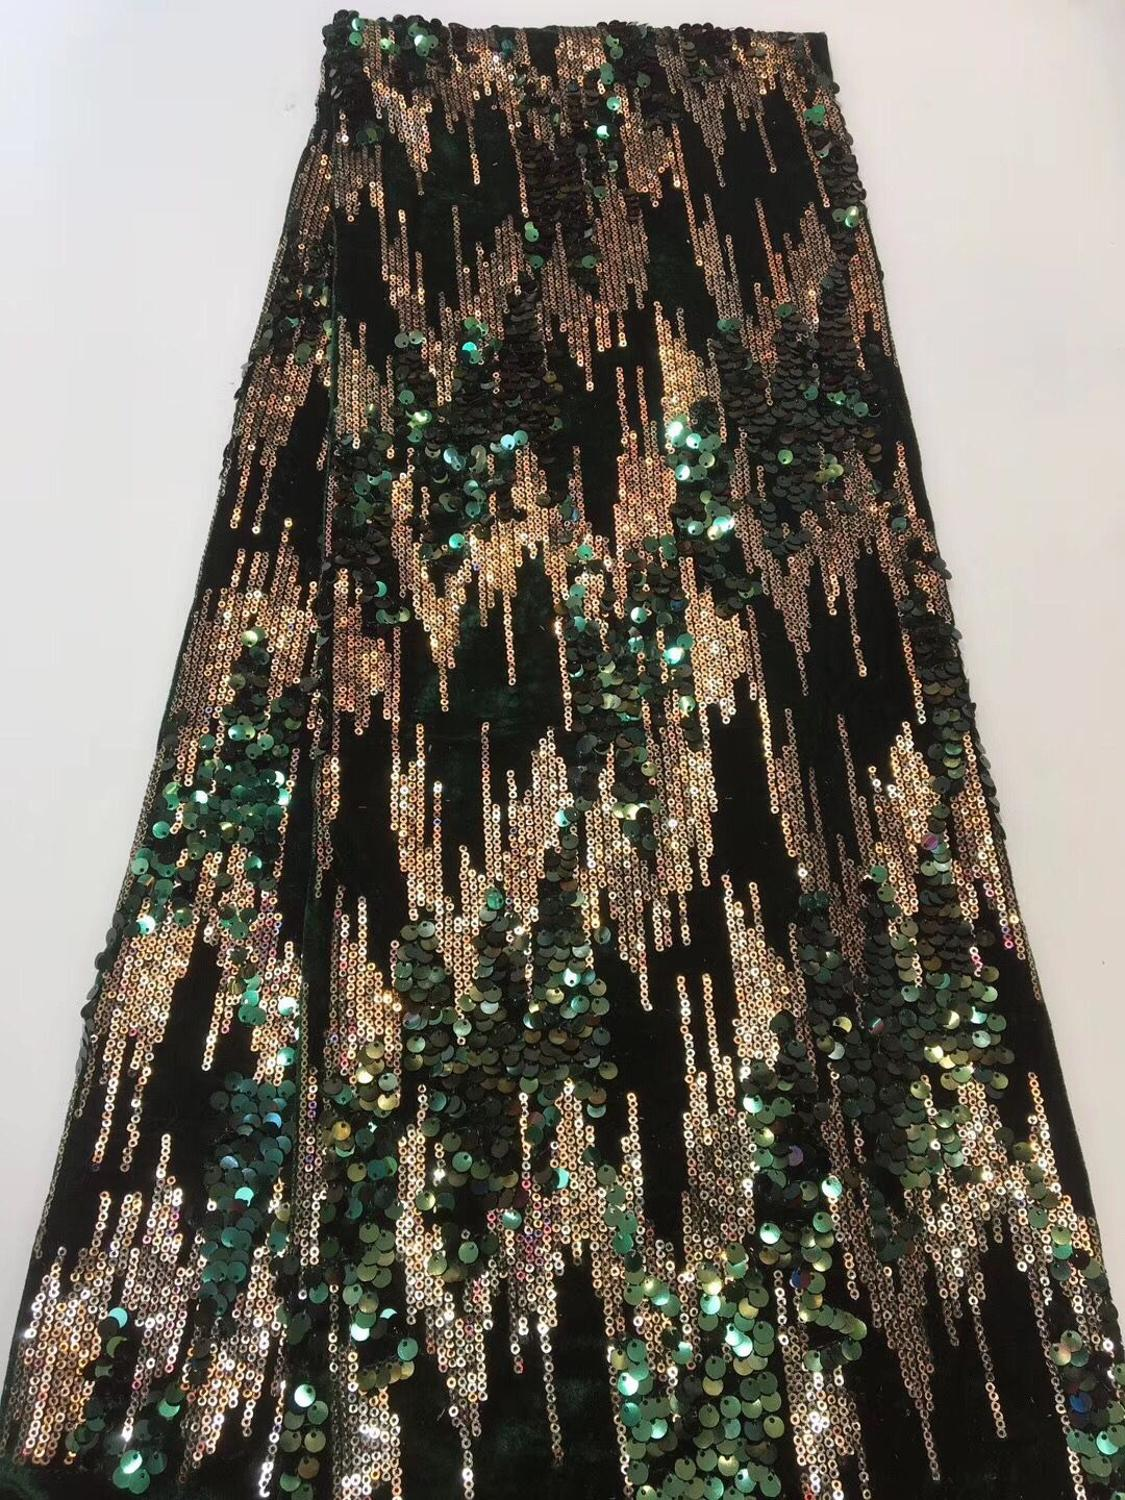 Latest Design Sequin Fabric with Tassels